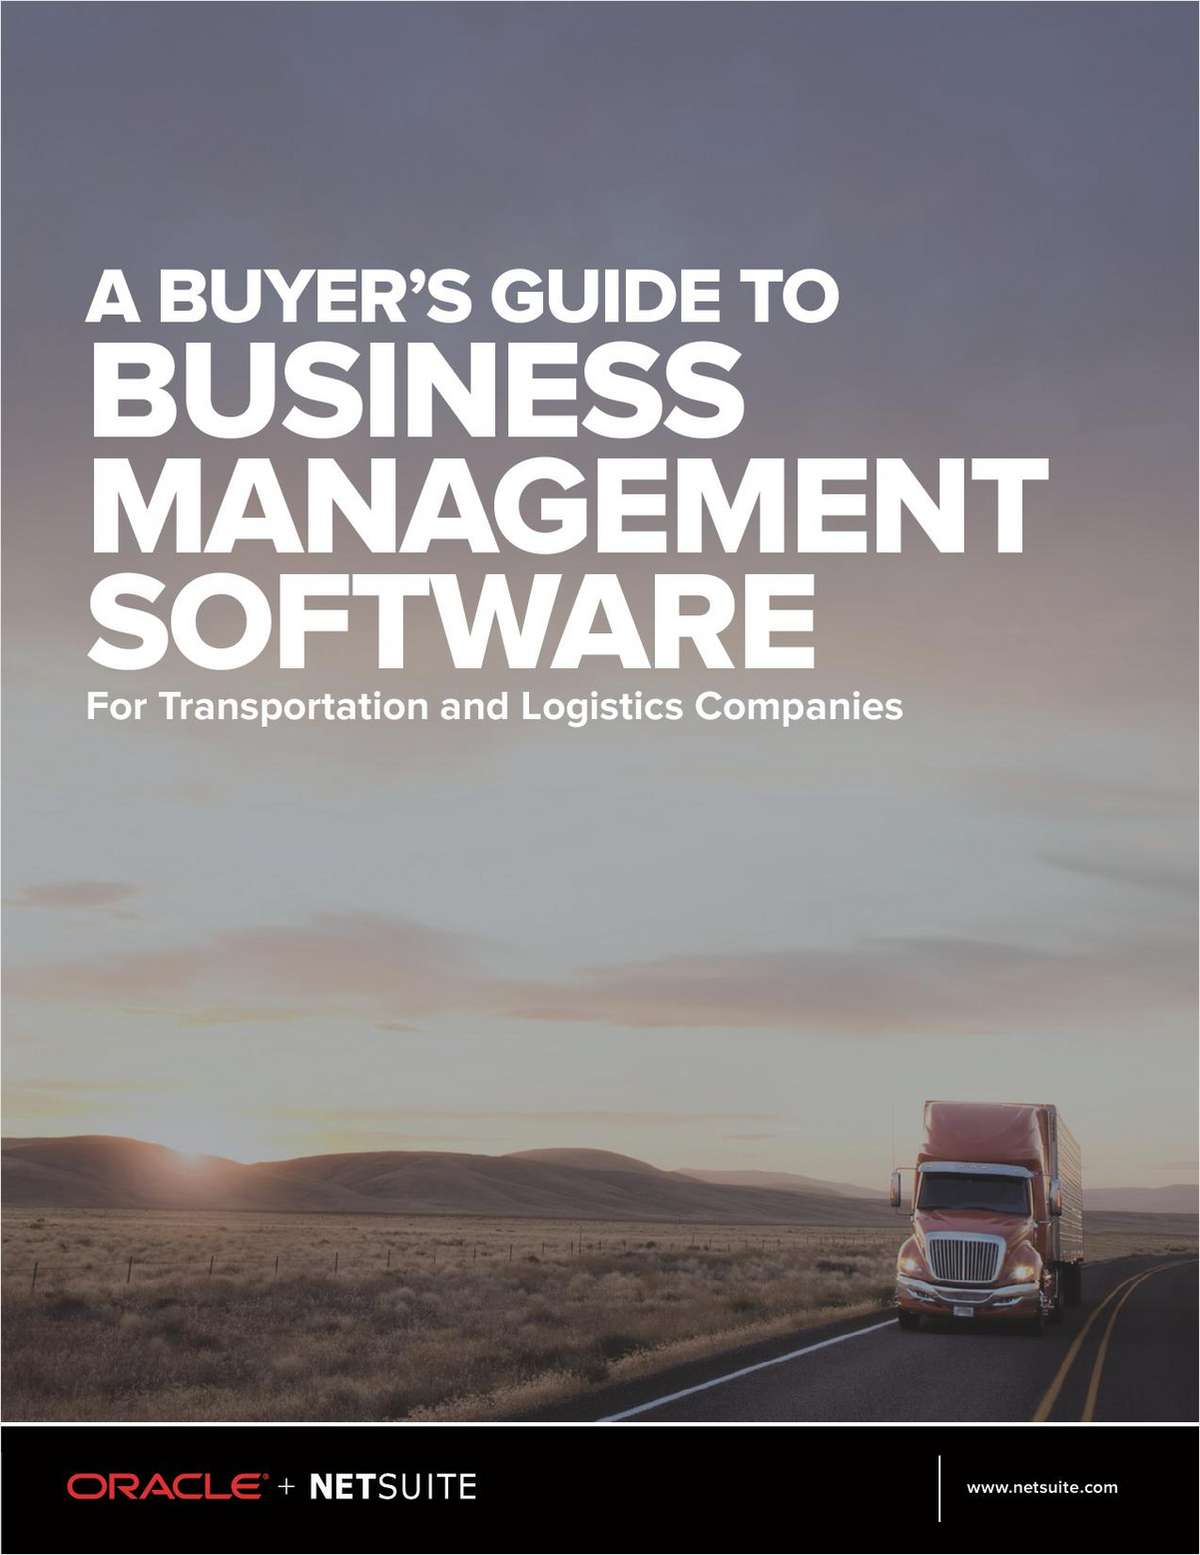 Business Management Software for Transportation and Logistics Companies